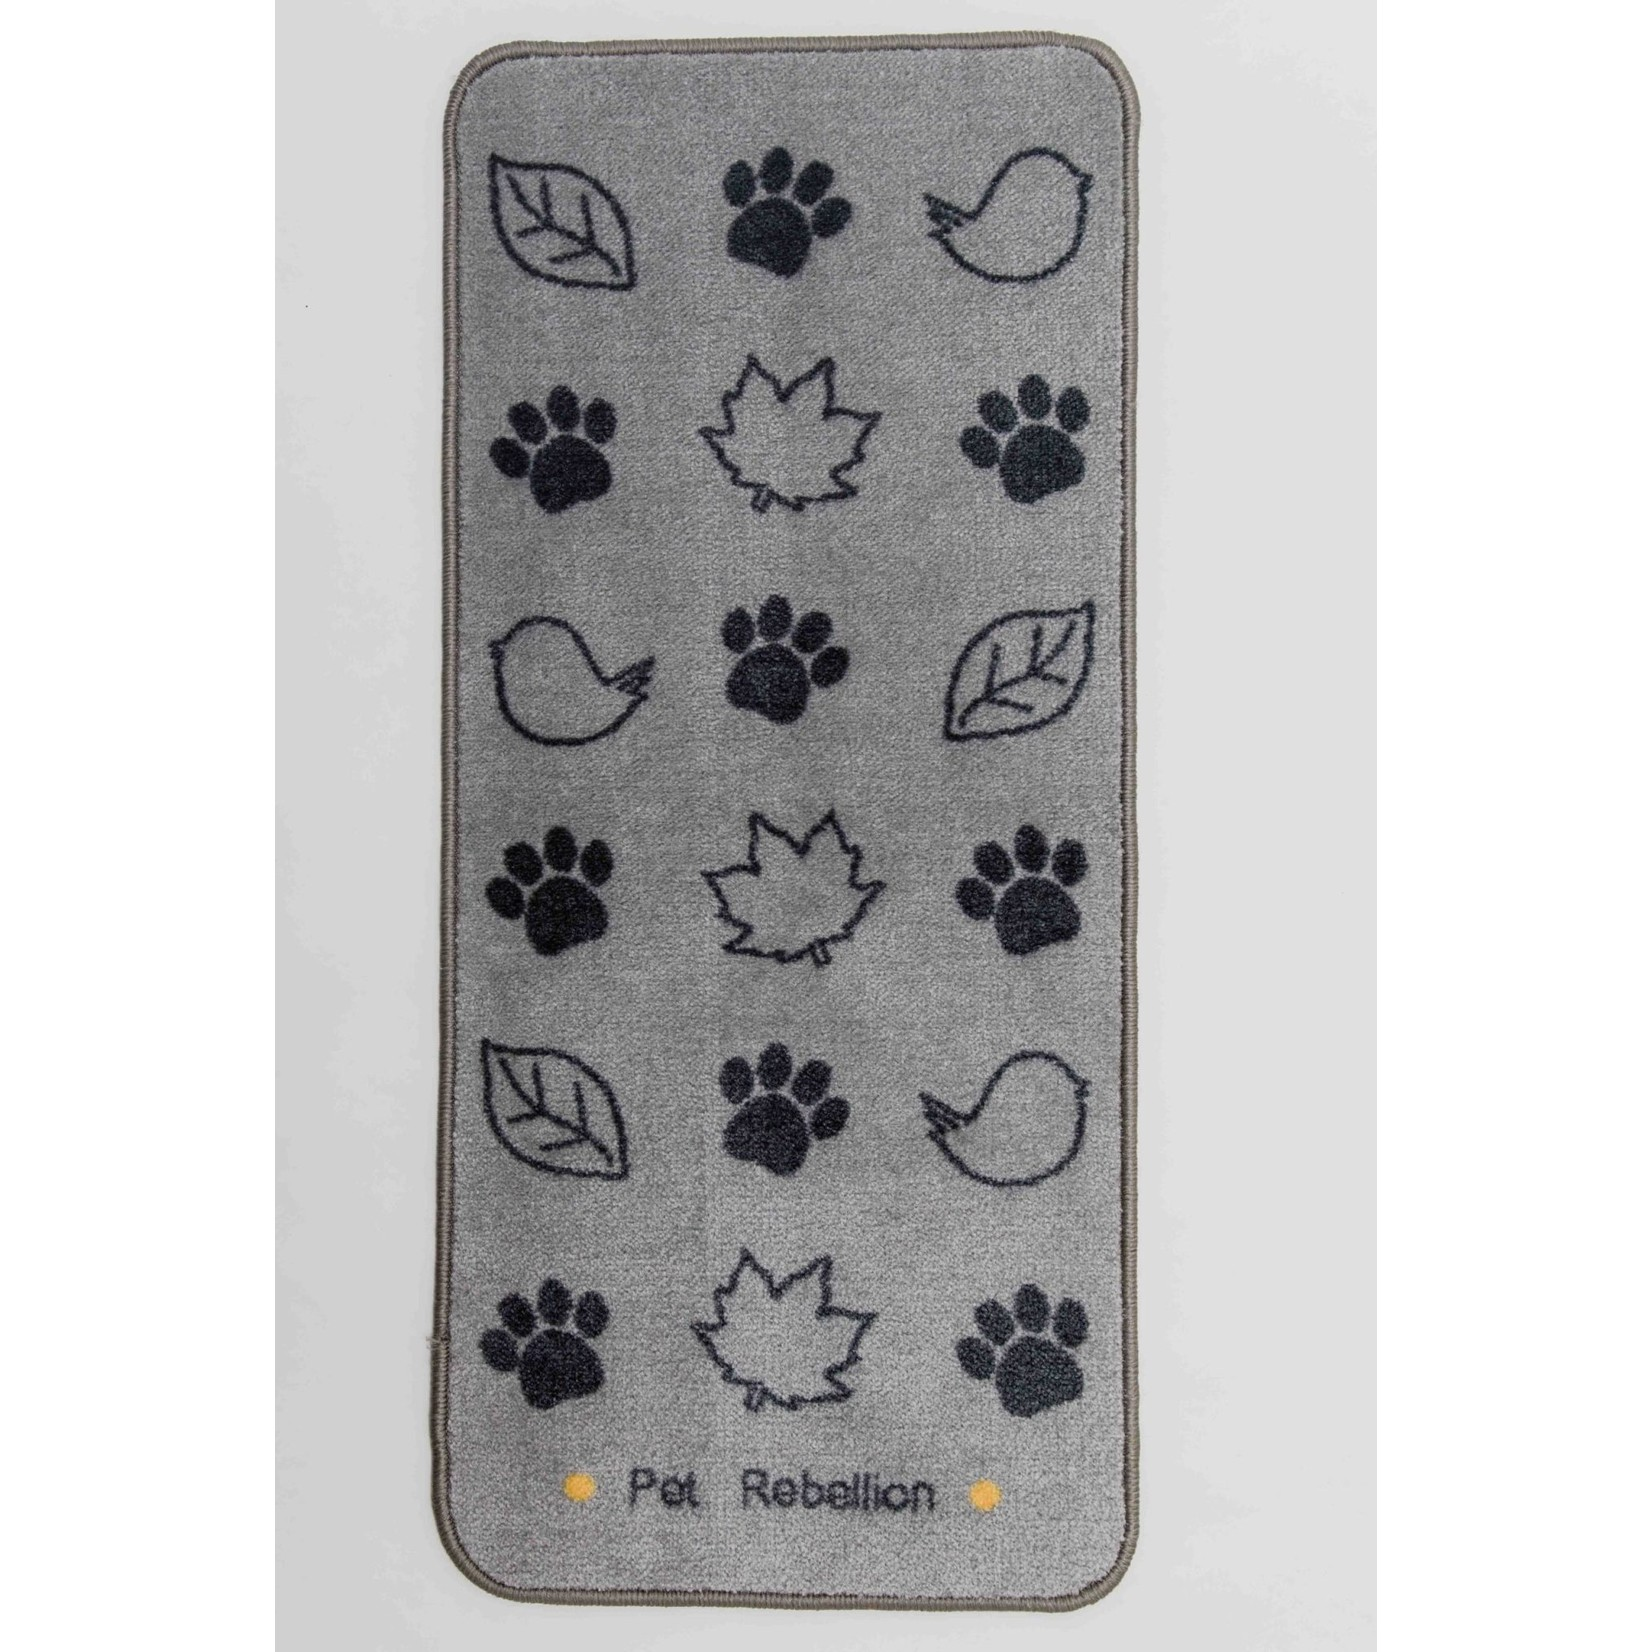 Pet Rebellion Stop Muddy Paws Barrier Rug, Country Walk, 45x100cm